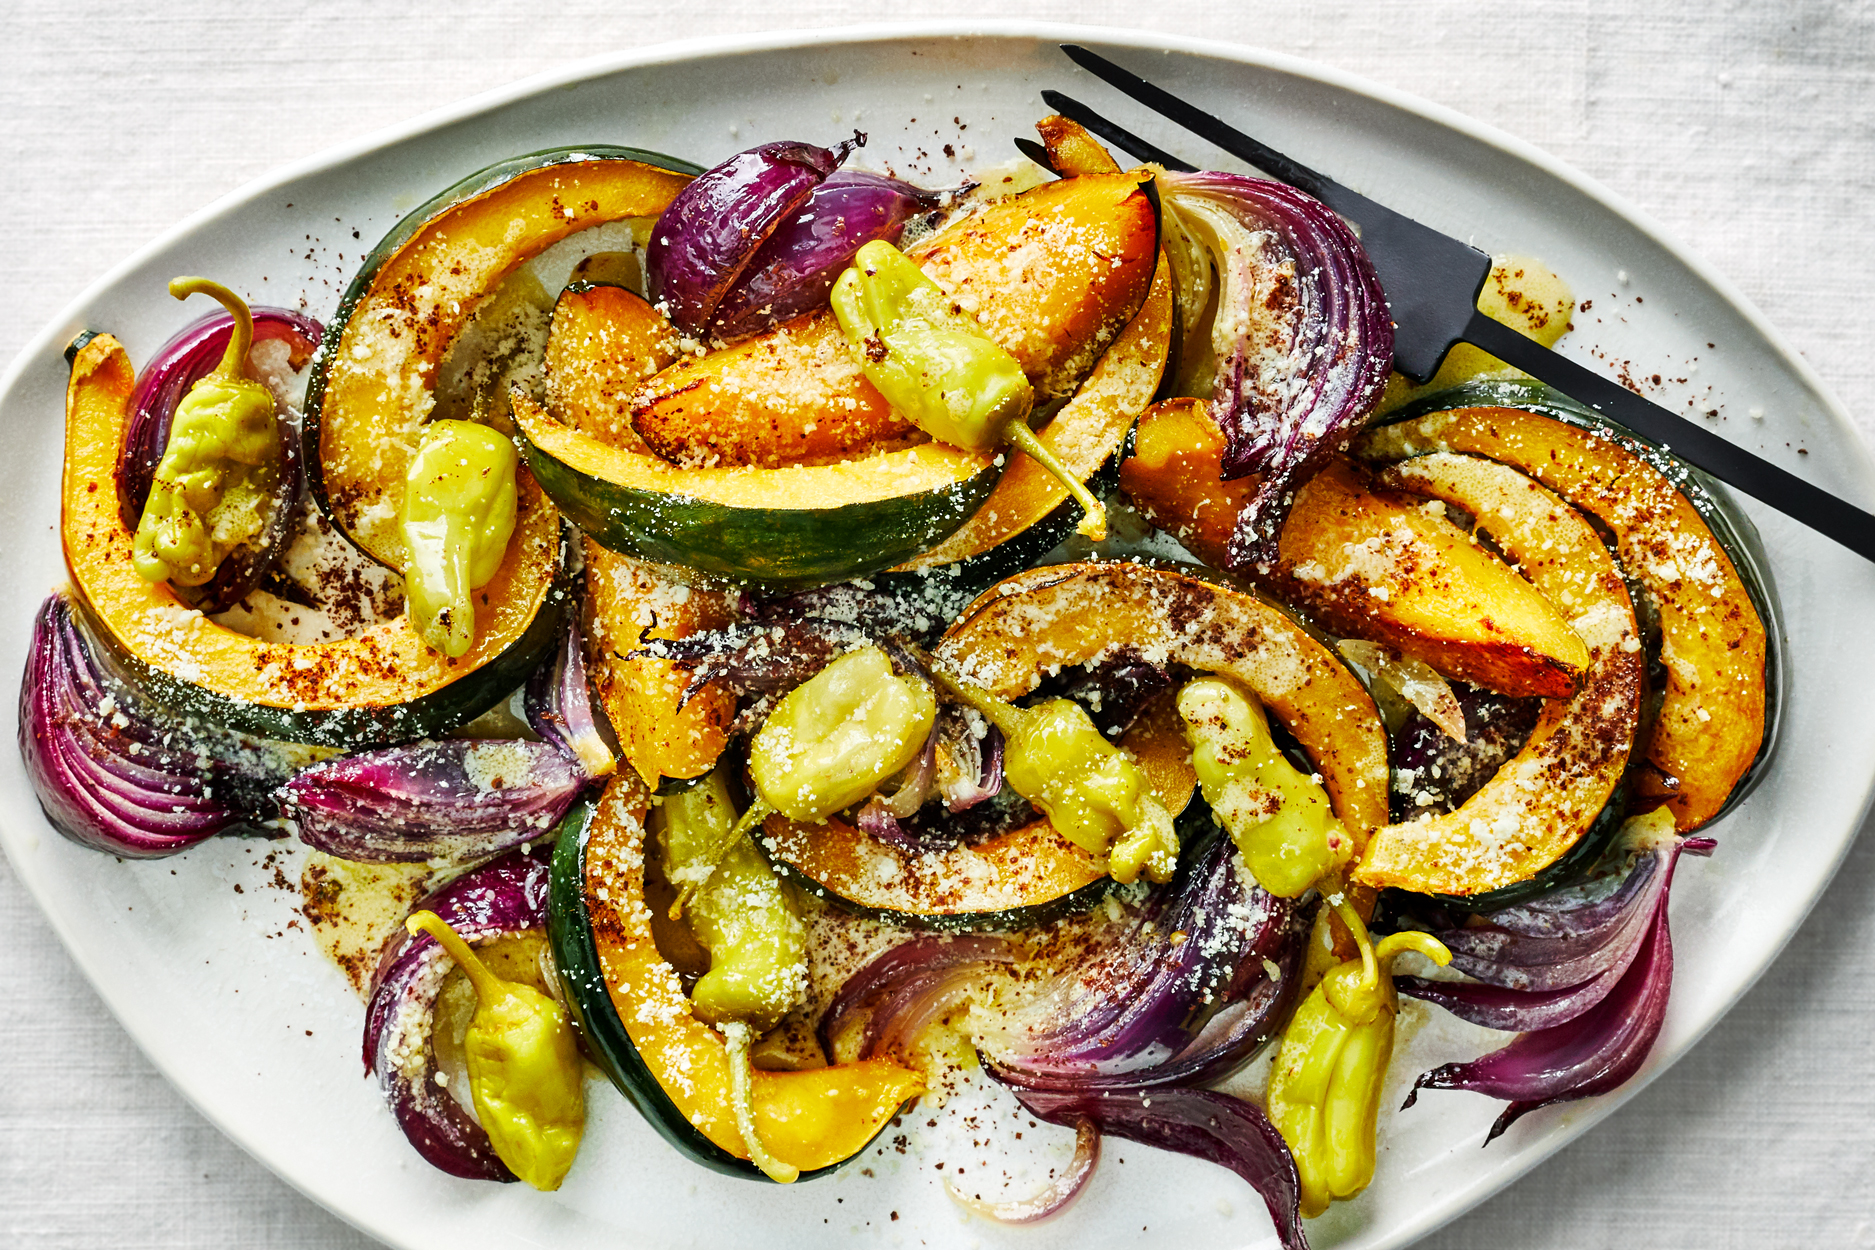 Roasted Squash Salad with Sumac and Italian Dressing